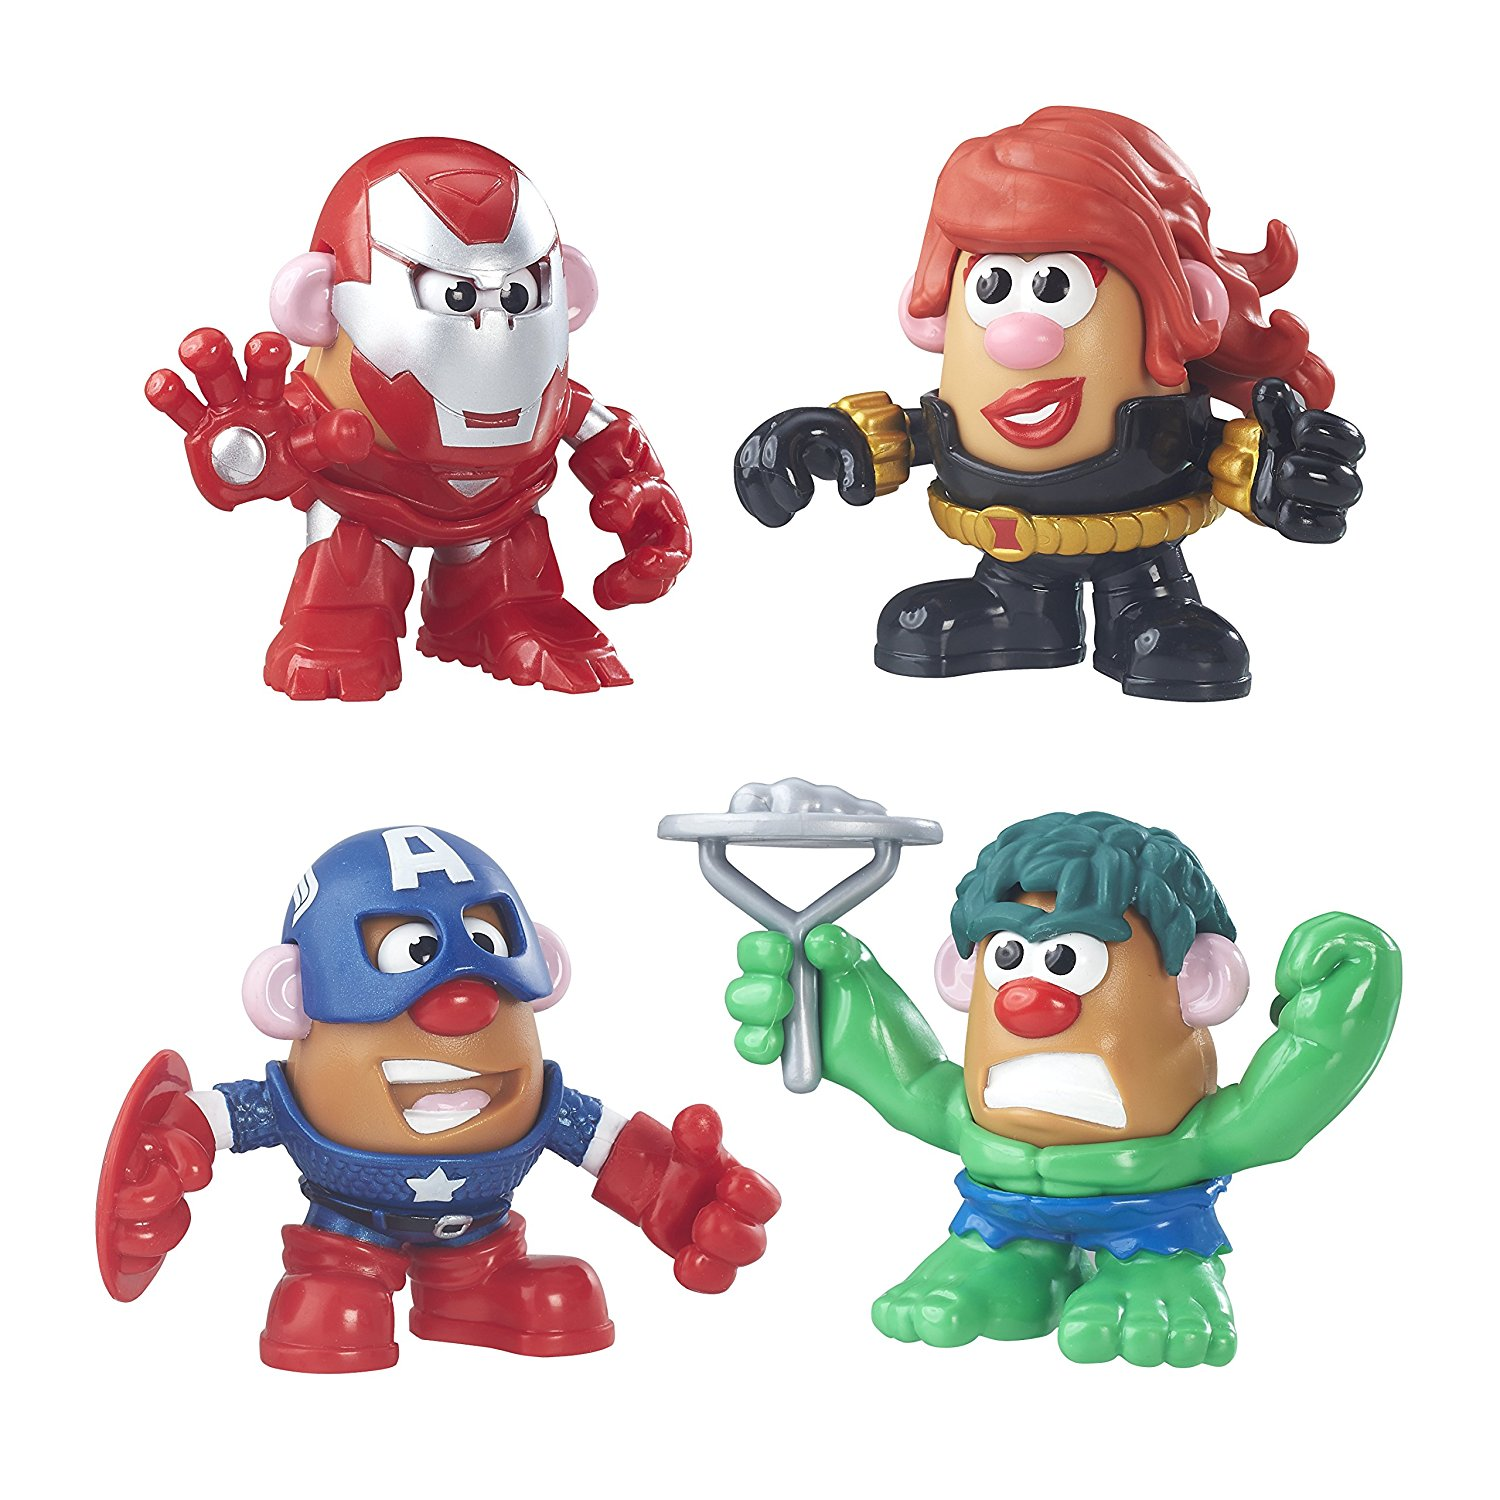 Playskool Friends Mr. Potato Head Marvel Super Rally Pack..., By Mr Potato Head Ship from US by